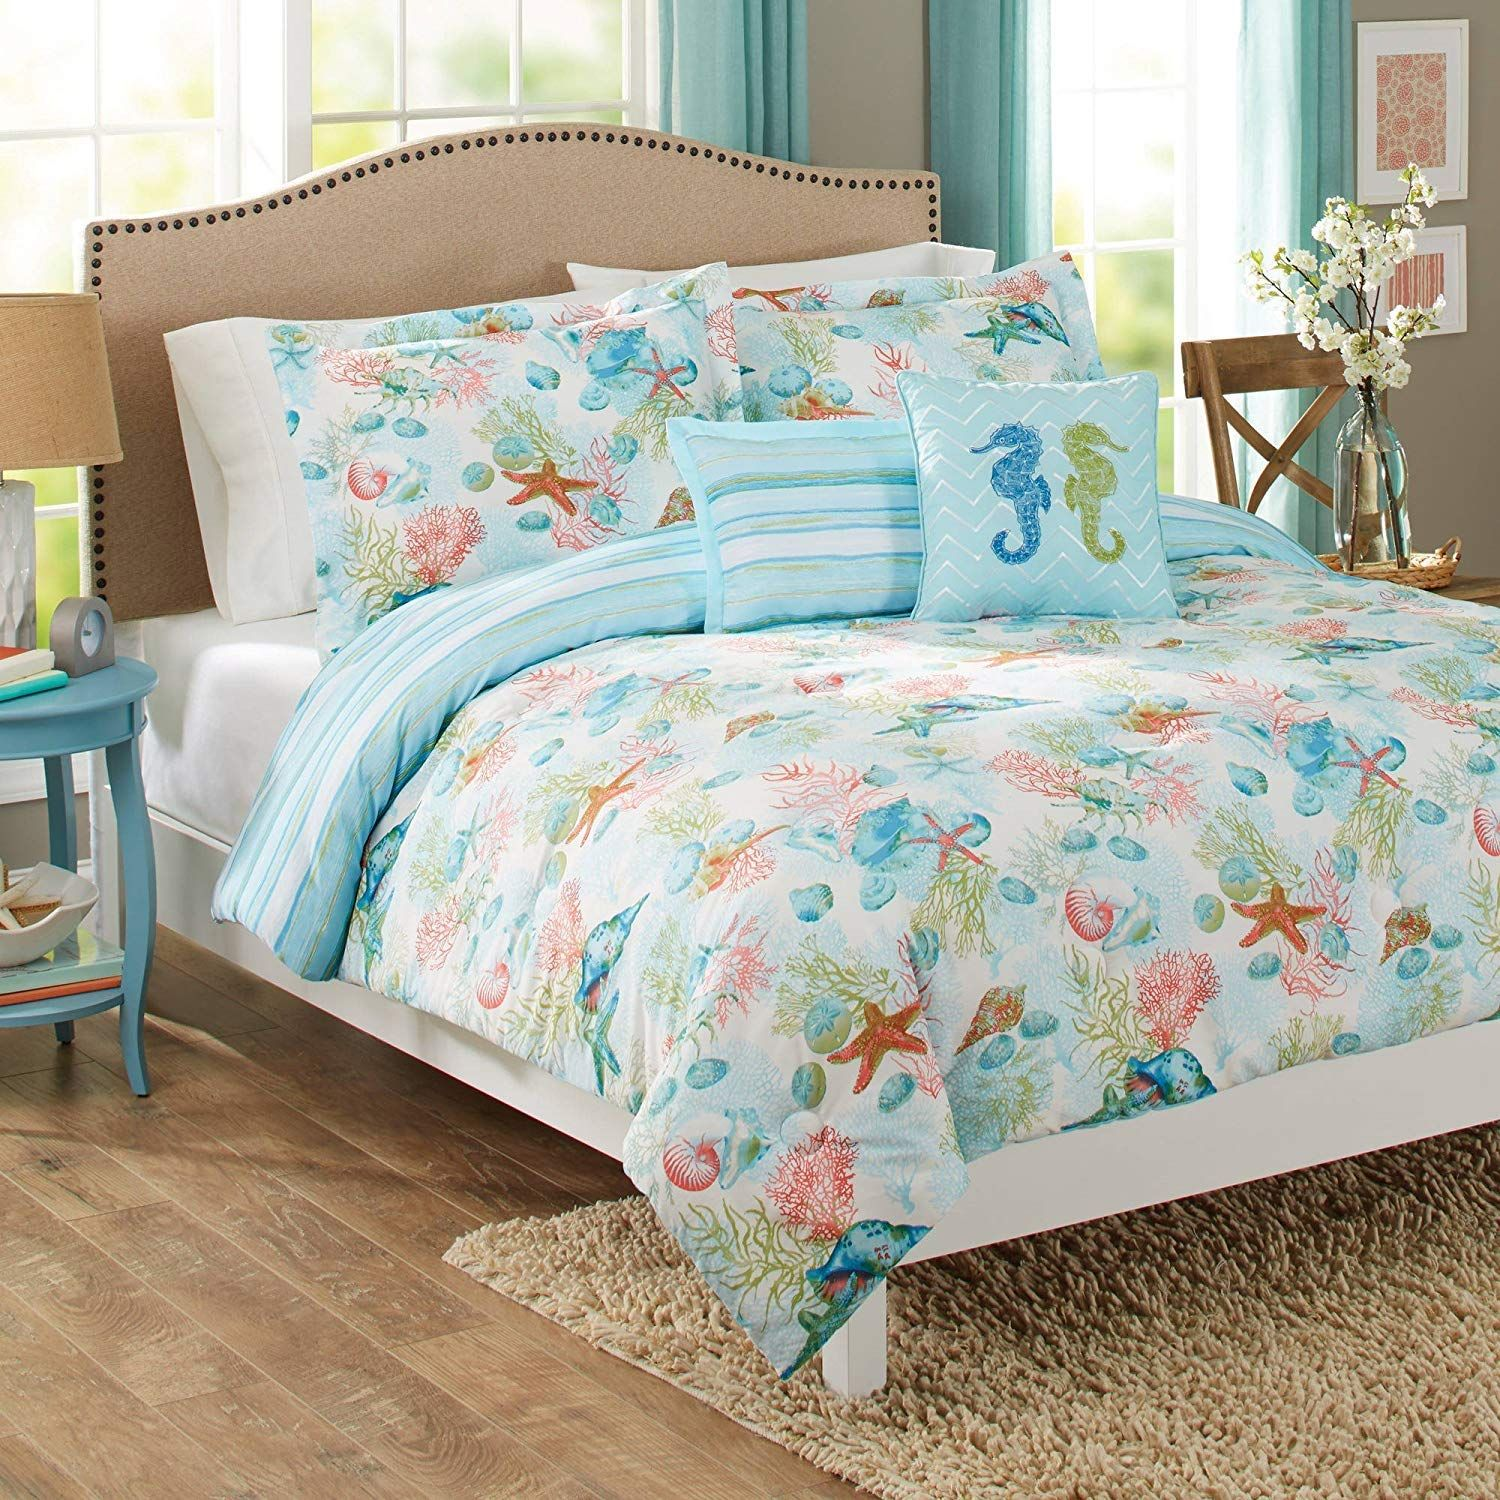 0dec0f7adbeb6478d566dd48ee6f4396 - Better Homes And Gardens Teal Flowers 5 Piece Set